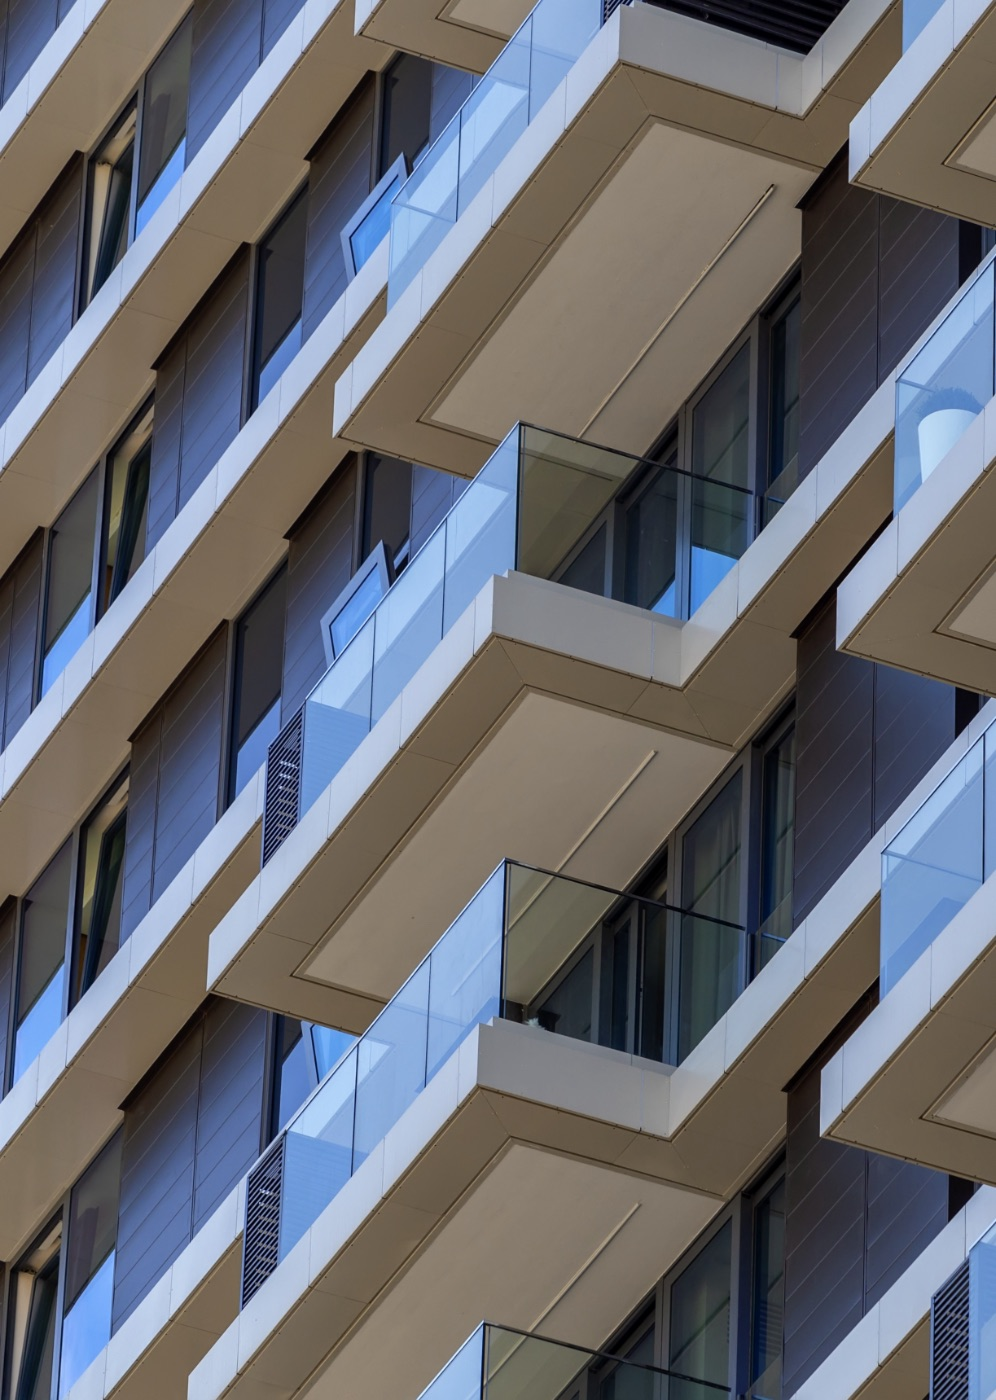 Modern block of flats with glass balconies